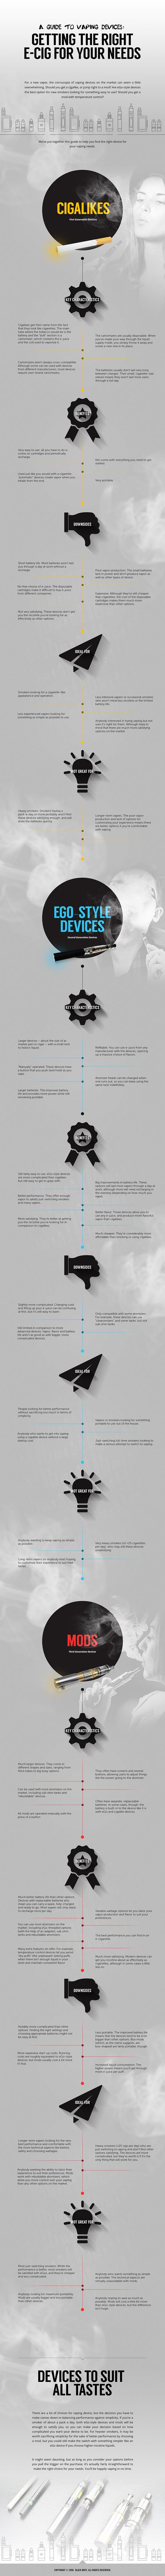 A Guide To Vaping: Getting The Right E-Cig For Your Needs #Infographic…